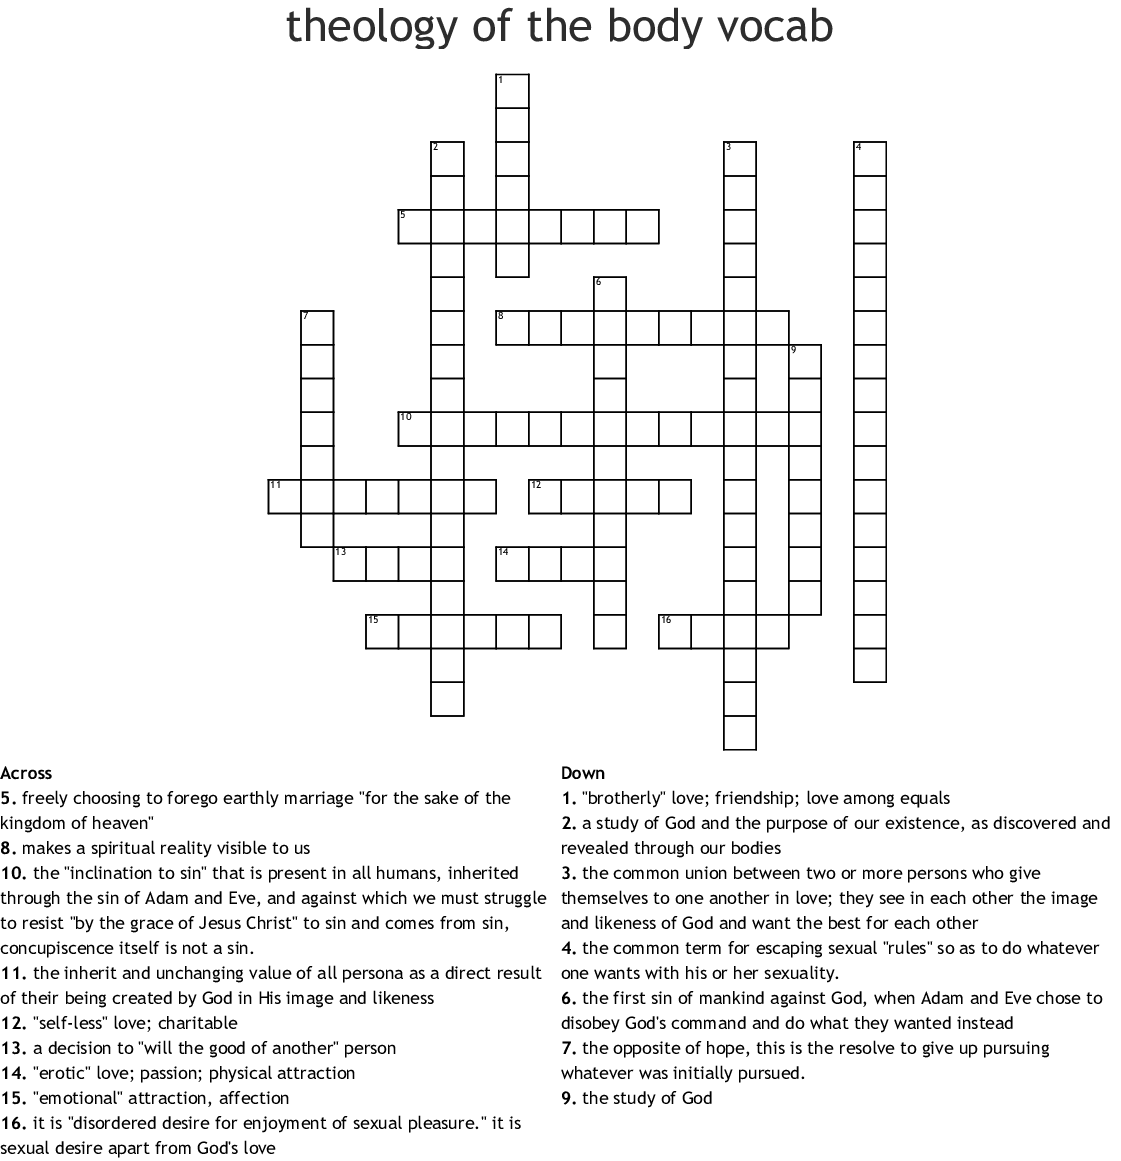 Theology Of The Body Chapter 1 Terms Word Search